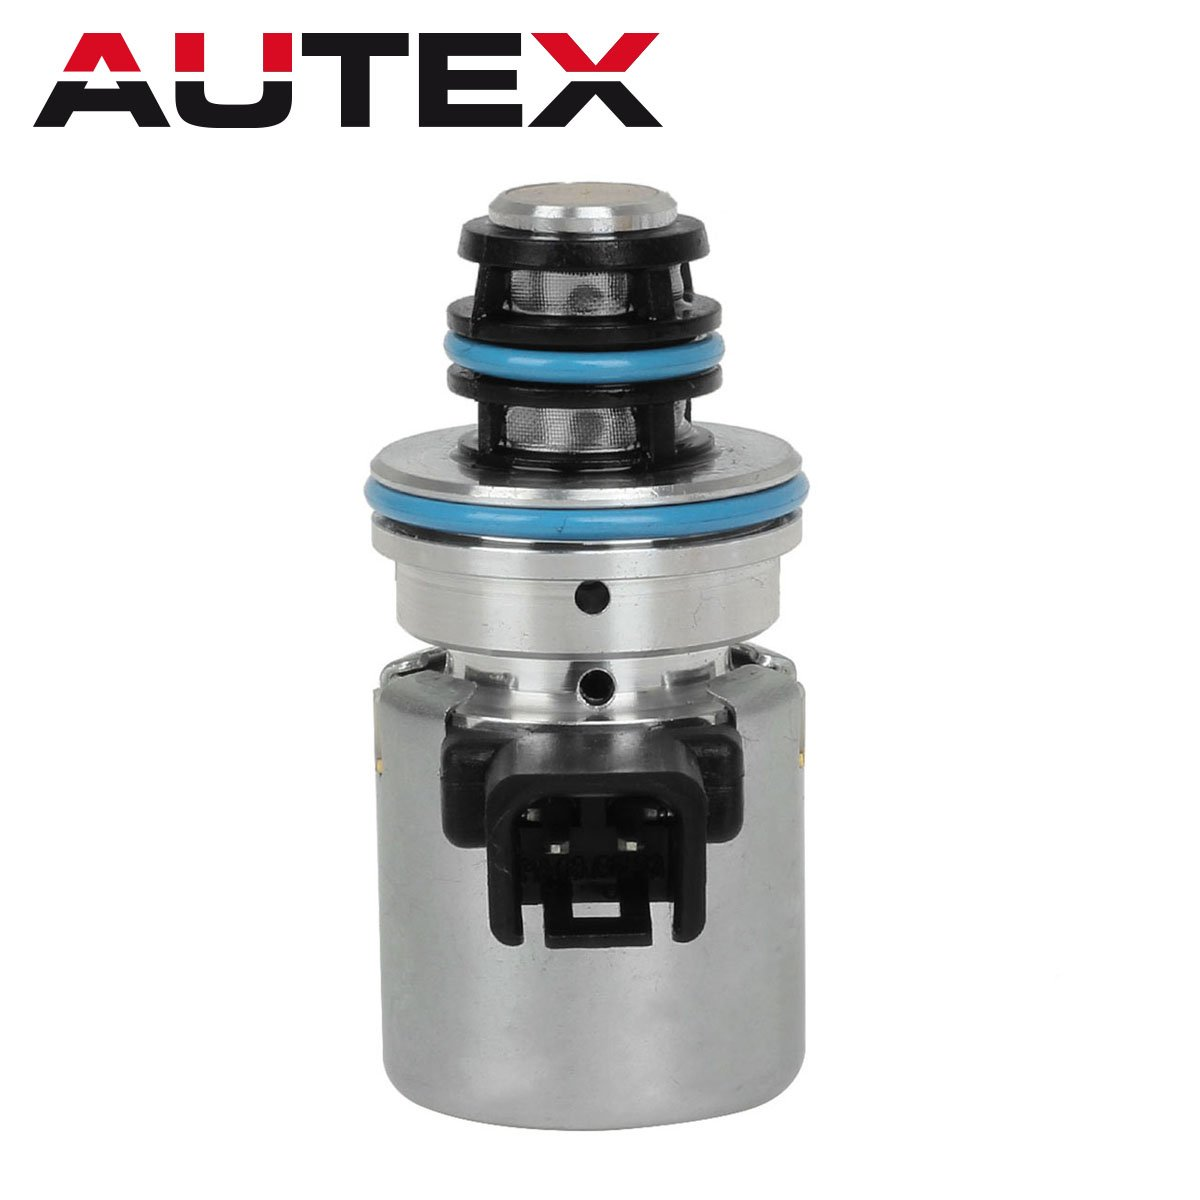 AUTEX Transmission Governor Pressure EPC Solenoid Compatible With Chrysler A518 A618 46RE 47RE